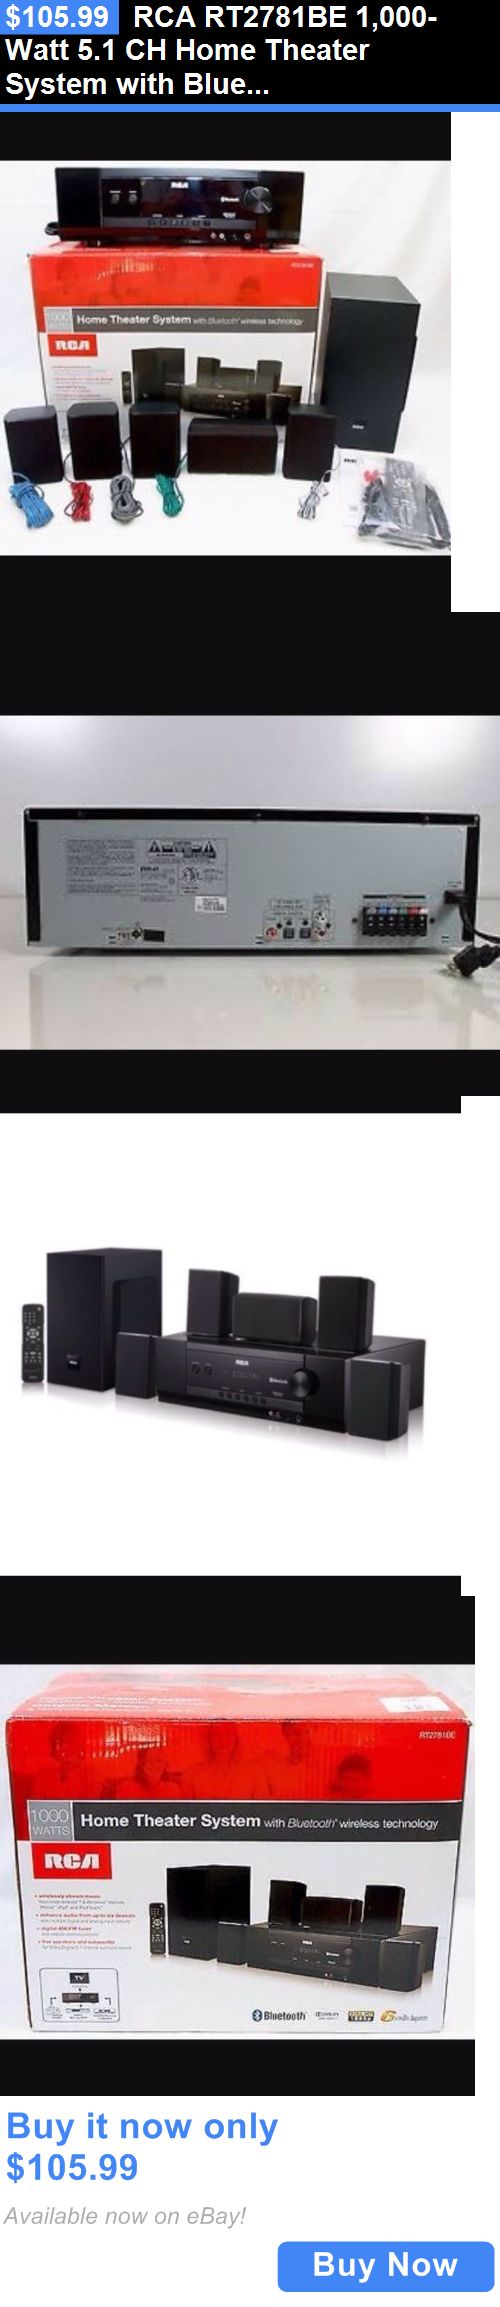 Home Theater Systems: Rca Rt2781be 1,000-Watt 5.1 Ch Home Theater System With Bluetooth And Remote BUY IT NOW ONLY: $105.99